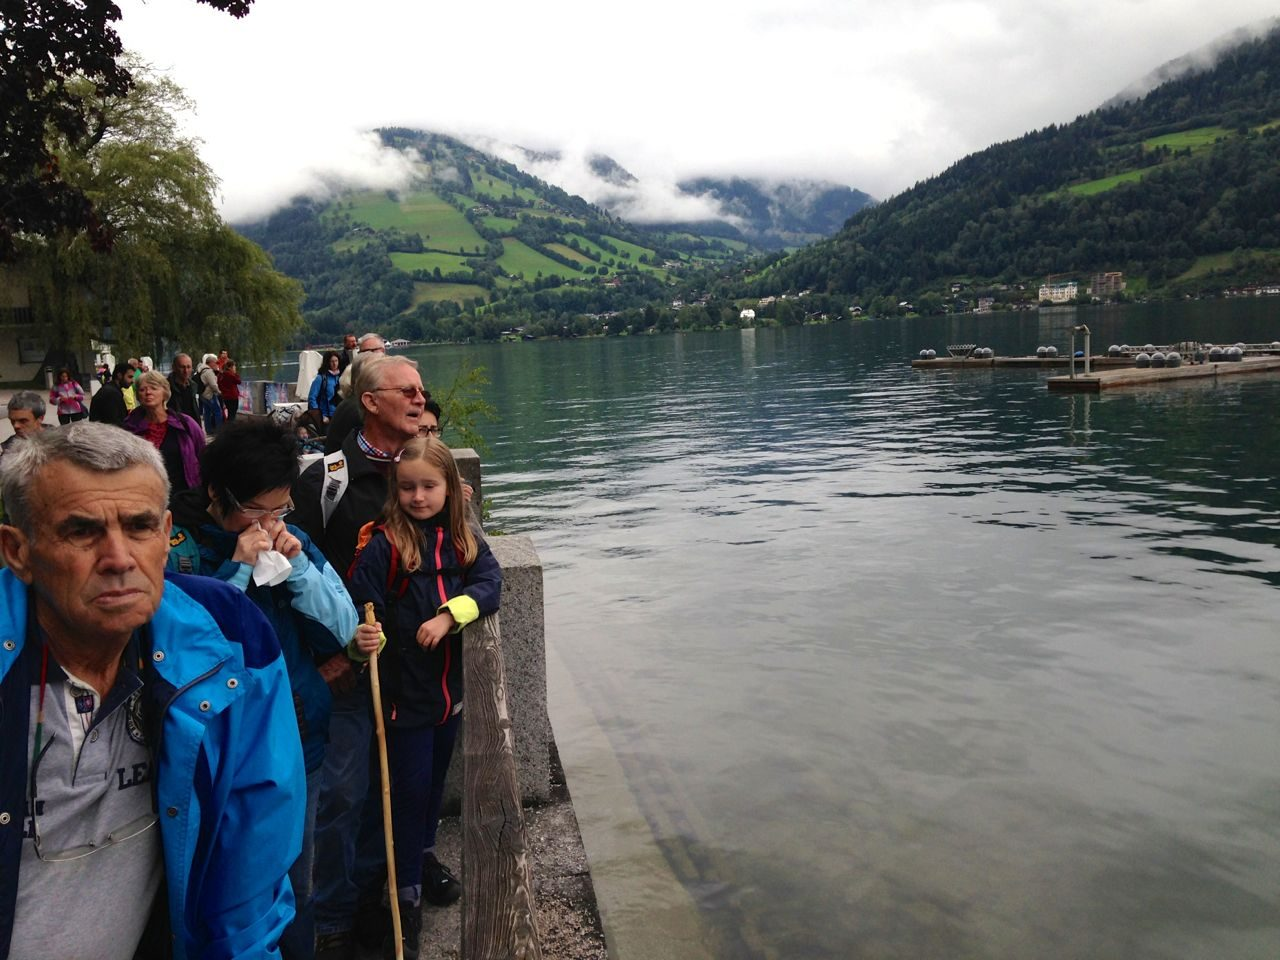 Spectators at Ironman 70.3 Zell am See